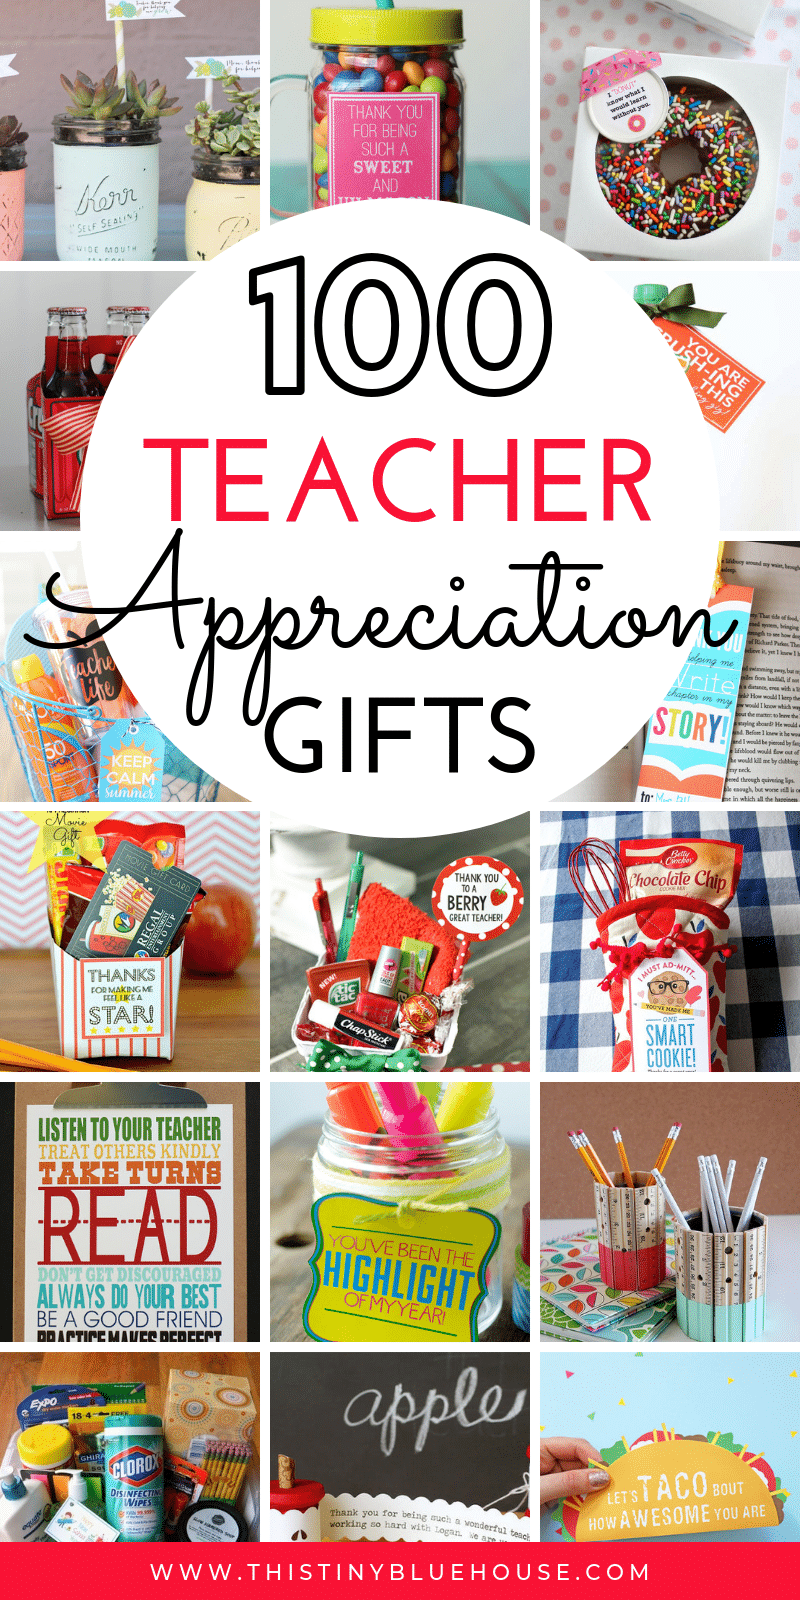 Are you looking for cute teacher appreciation gifts to express your gratitude? Here are 100 of the absolute best cute teacher appreciation gifts. From DIY projects to budget friendly gifts and adorable gifts in jars, you're guaranteed to find the perfect gift for the special teacher in your life. #teachergifts #teacherappreciationgifts #teachergiftsendofyear #teachergiftsdiy #easydiyteachergifts #homemadeteachergifts #uniqueteachergifts